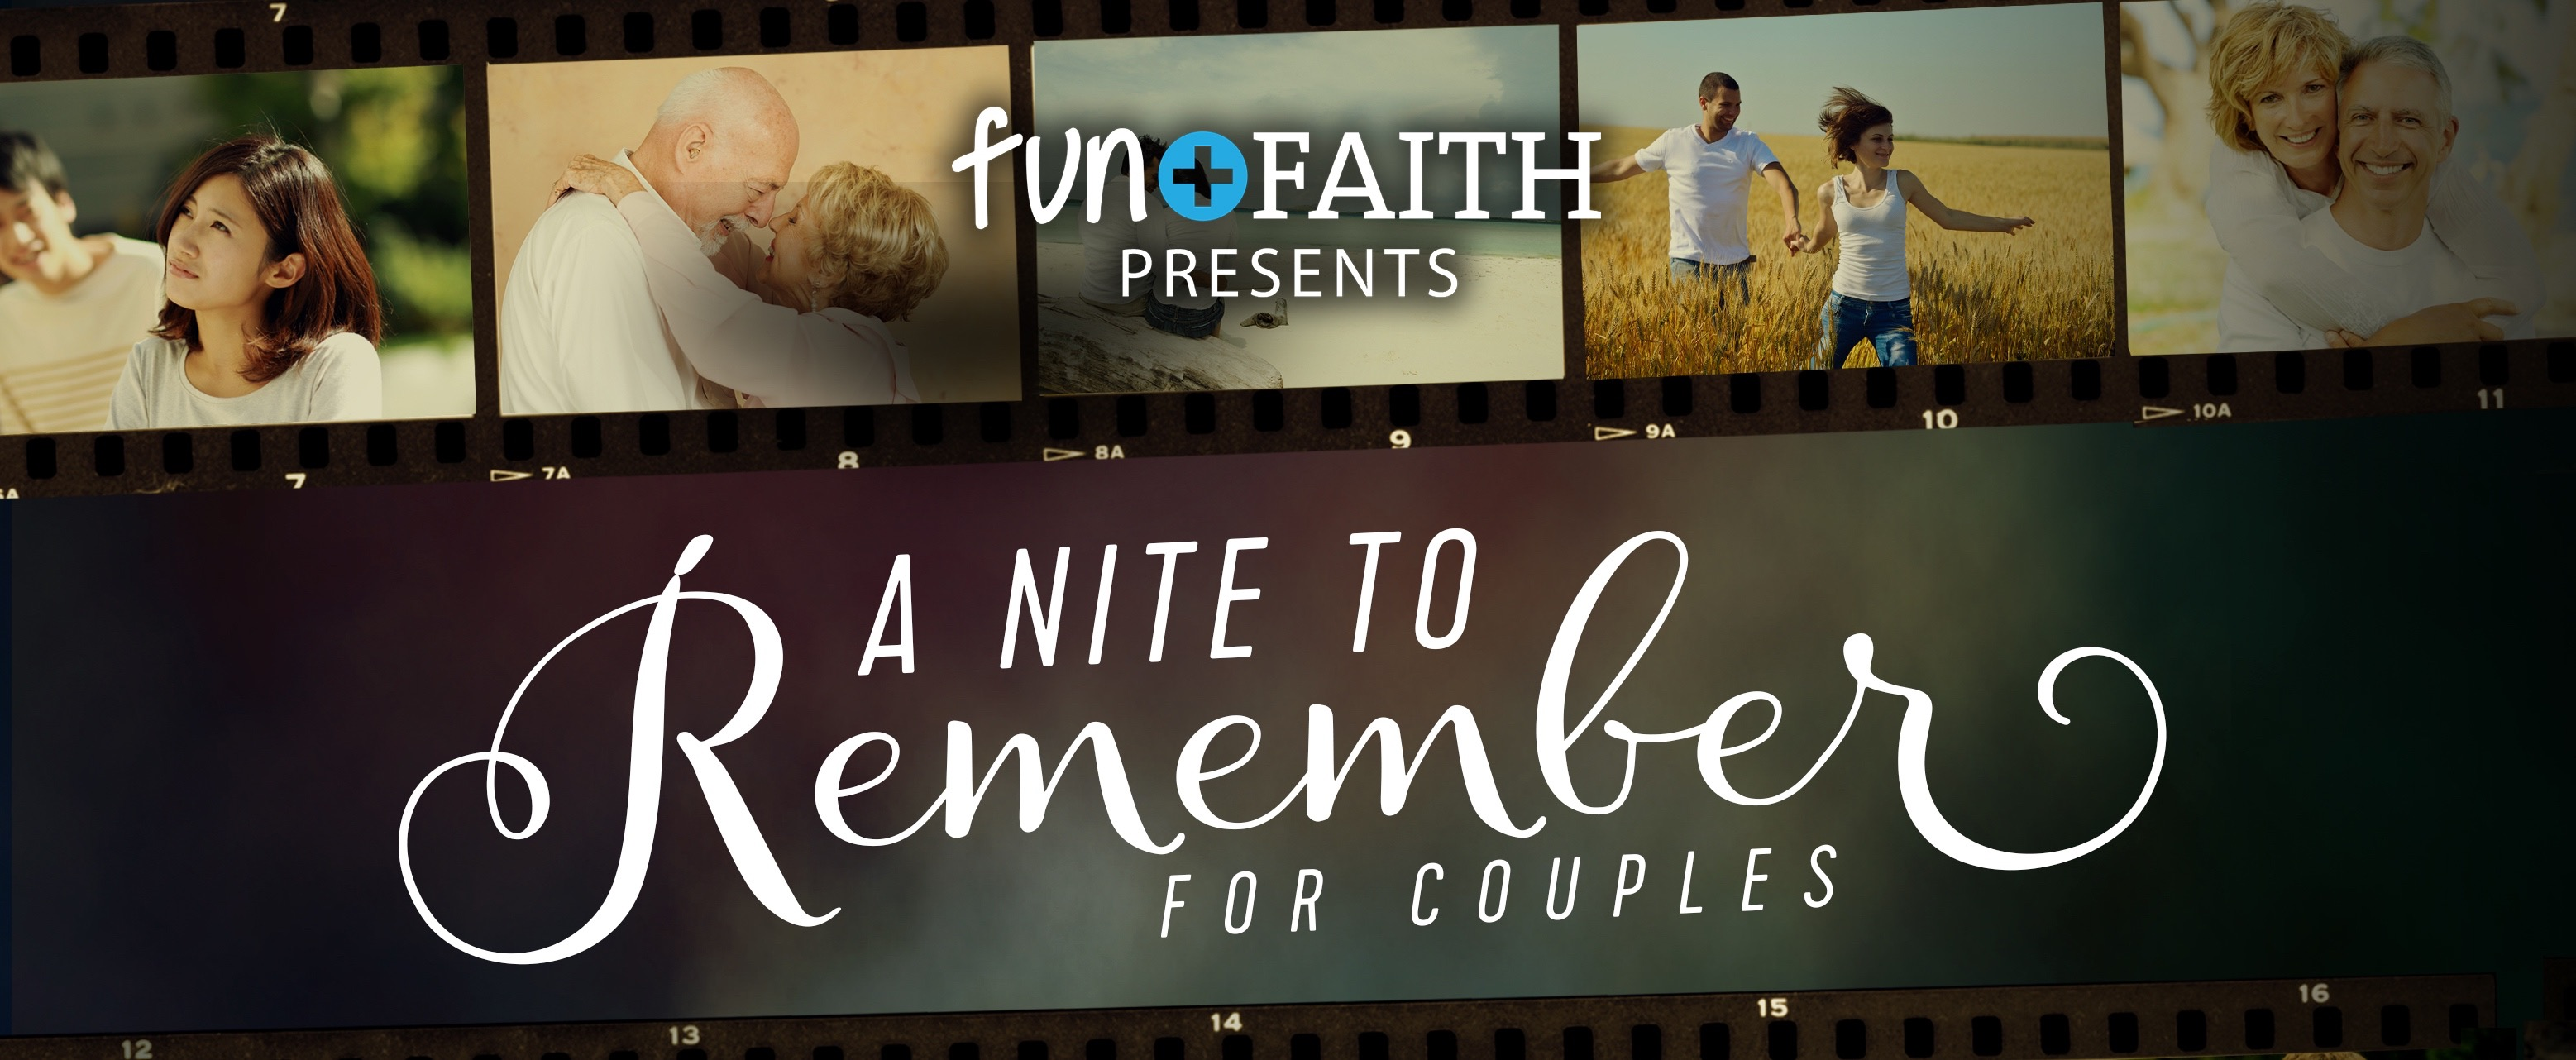 Tickets for A Nite To Remember for Couples in Wichita Falls from BuzzTix